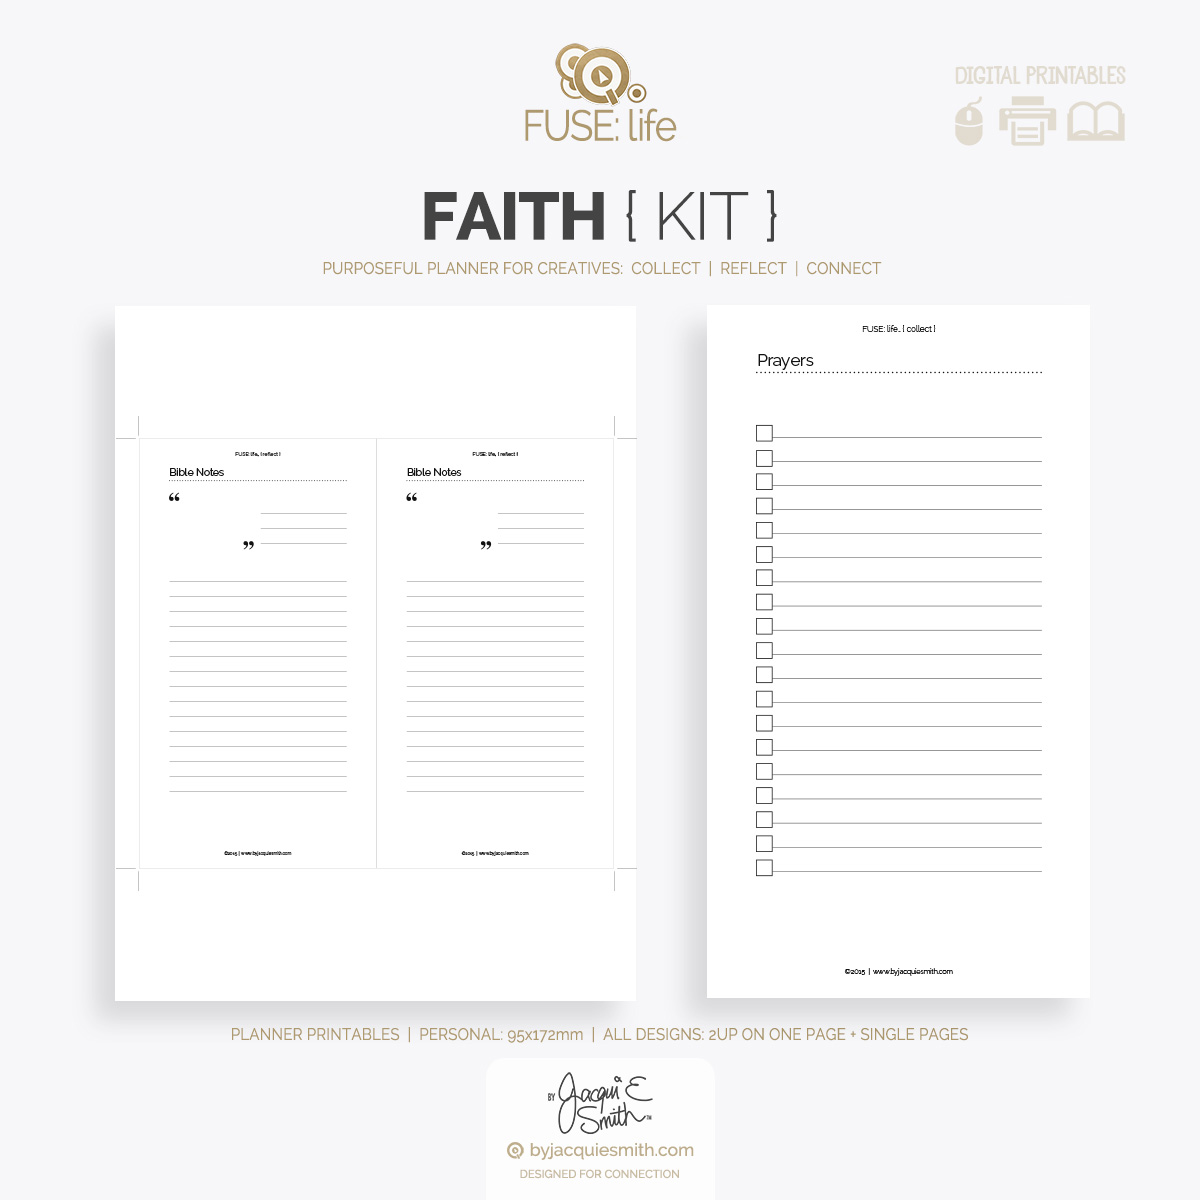 Faith FUSElife printable planer kit at byjacquiesmith.com